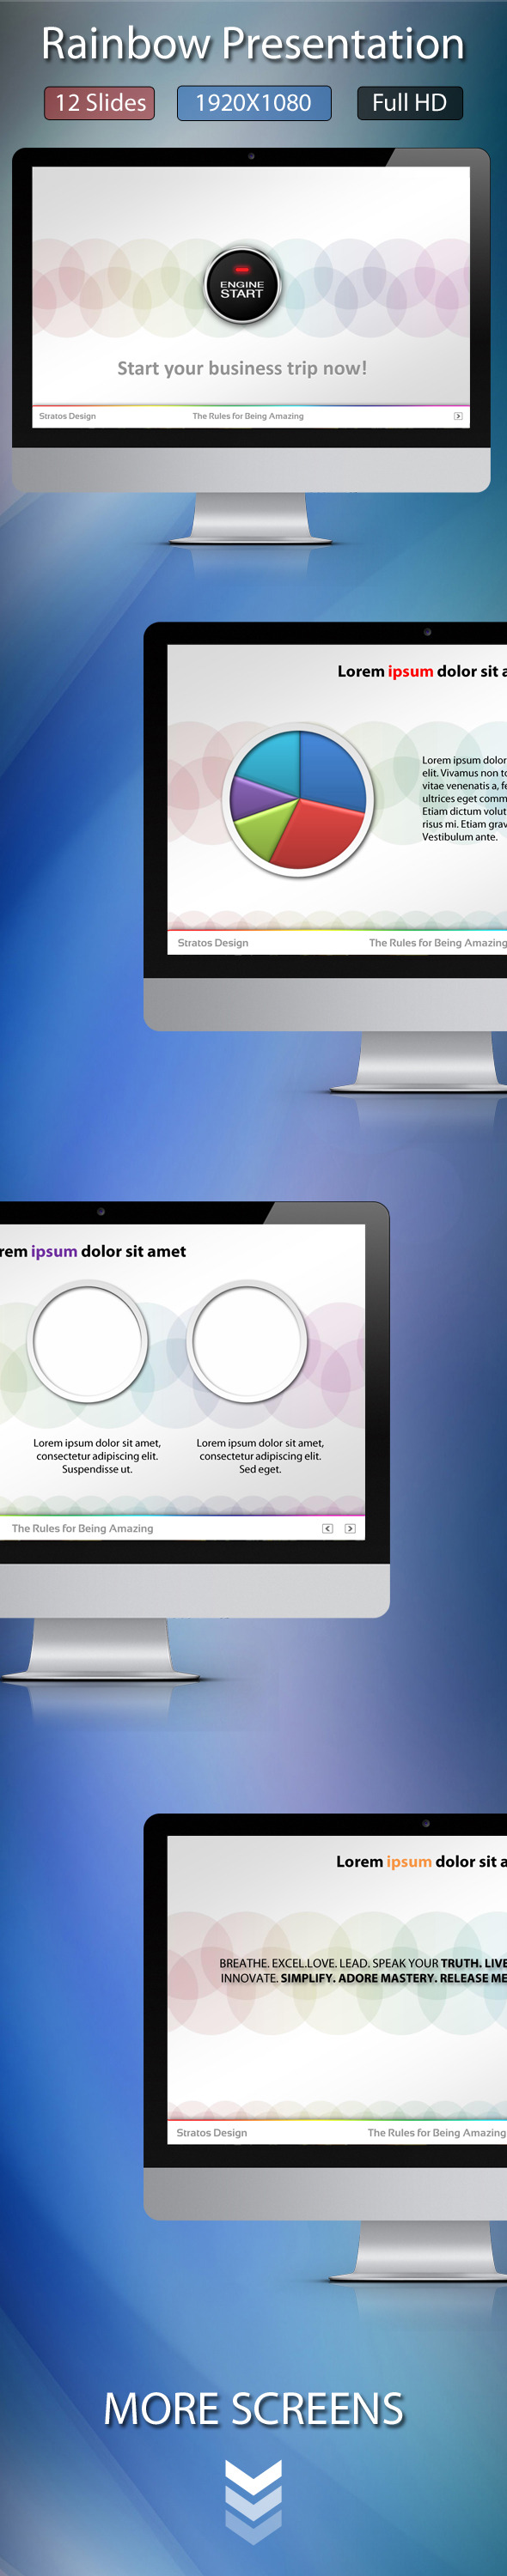 Rainbow Presentation - Abstract PowerPoint Templates